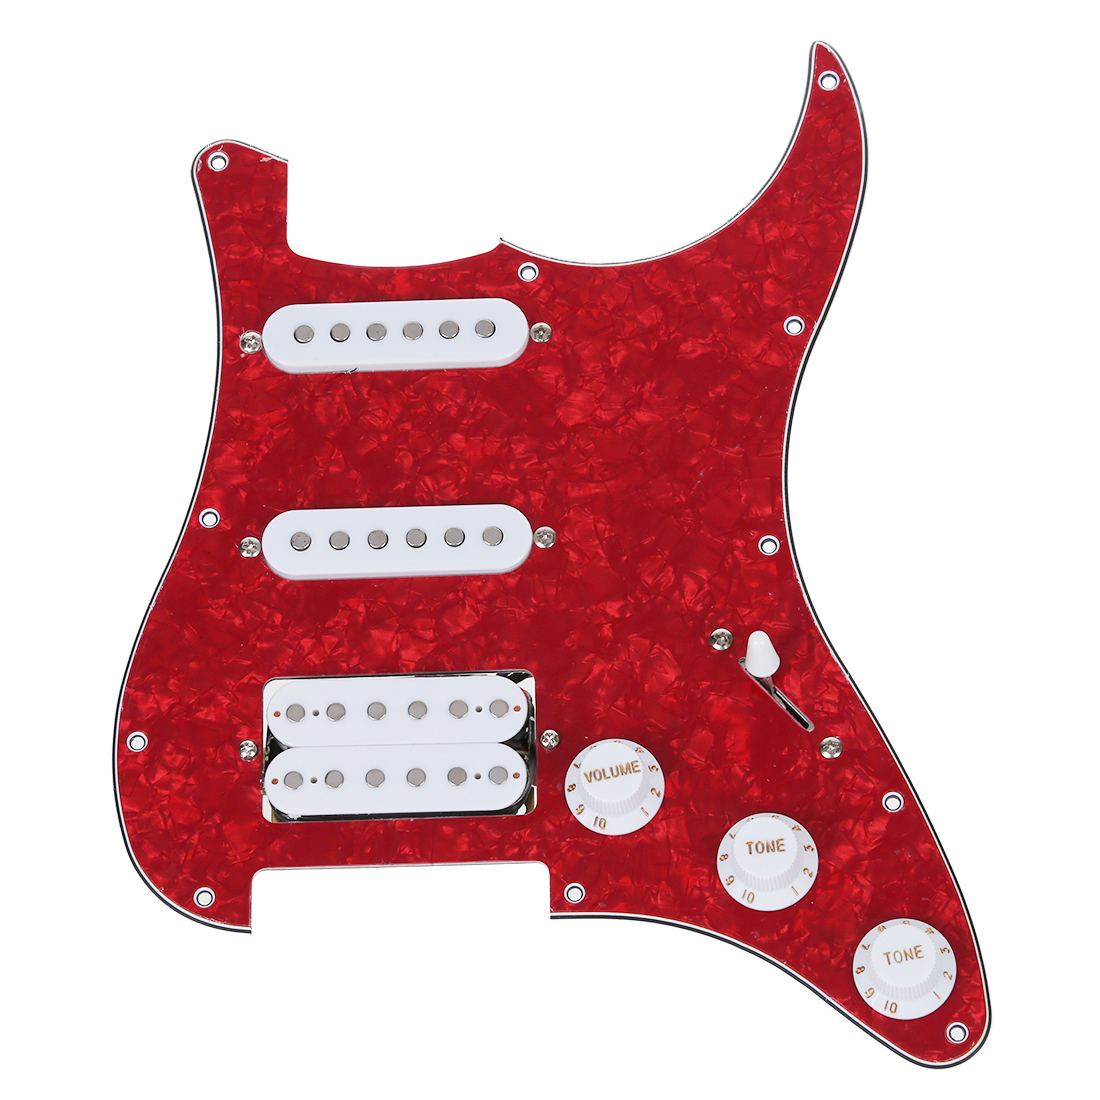 8Pcs Loaded Prewired Pickguard for Electric Guitar---Red wholesale 5x loaded prewired pickguard for electric guitar red